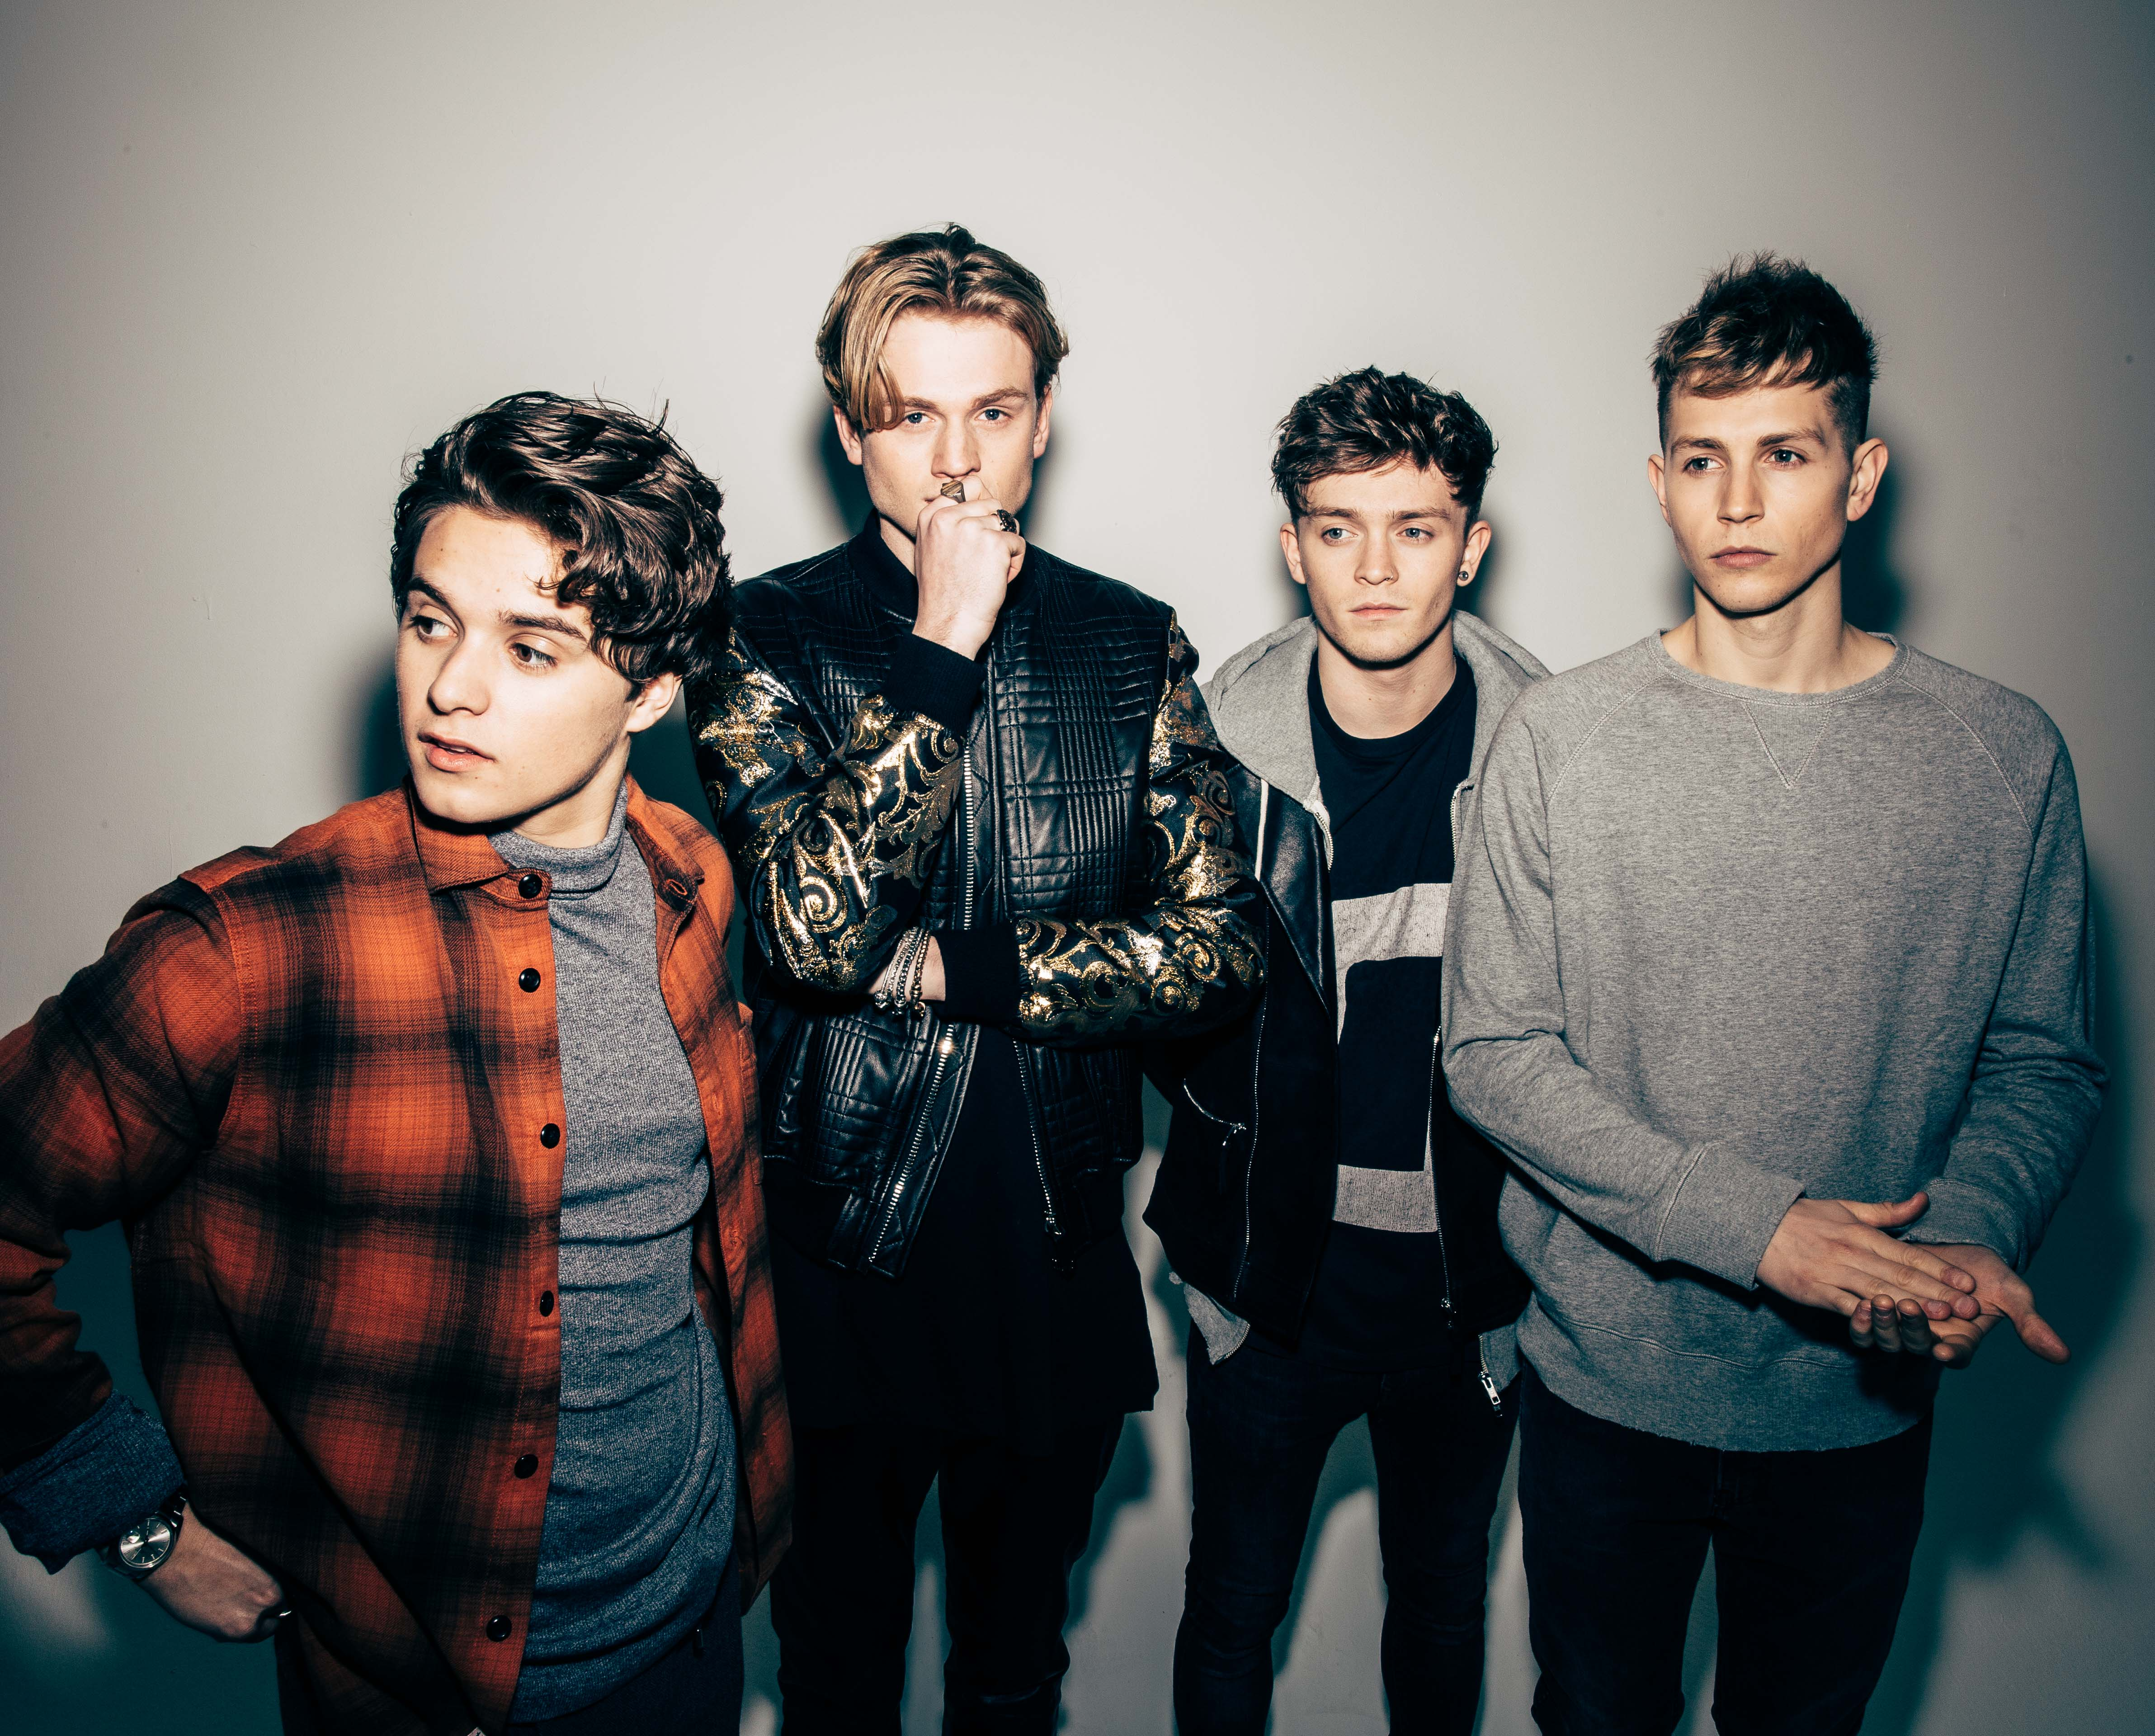 INTERVIEW: 5 Minutes with Brad Simpson and Connor Ball from The Vamps